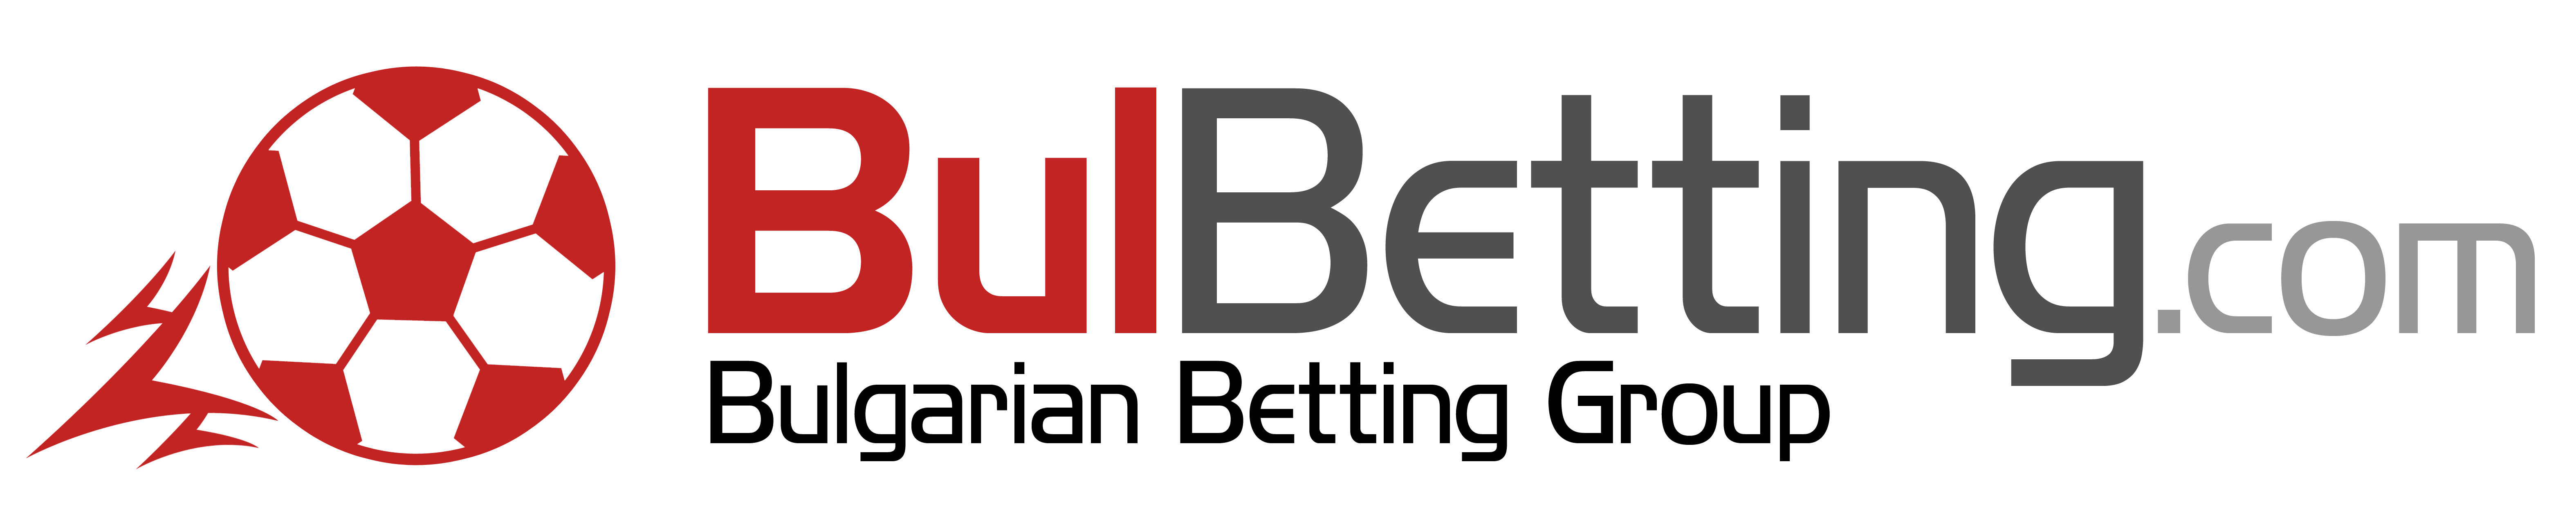 BulBetting.com